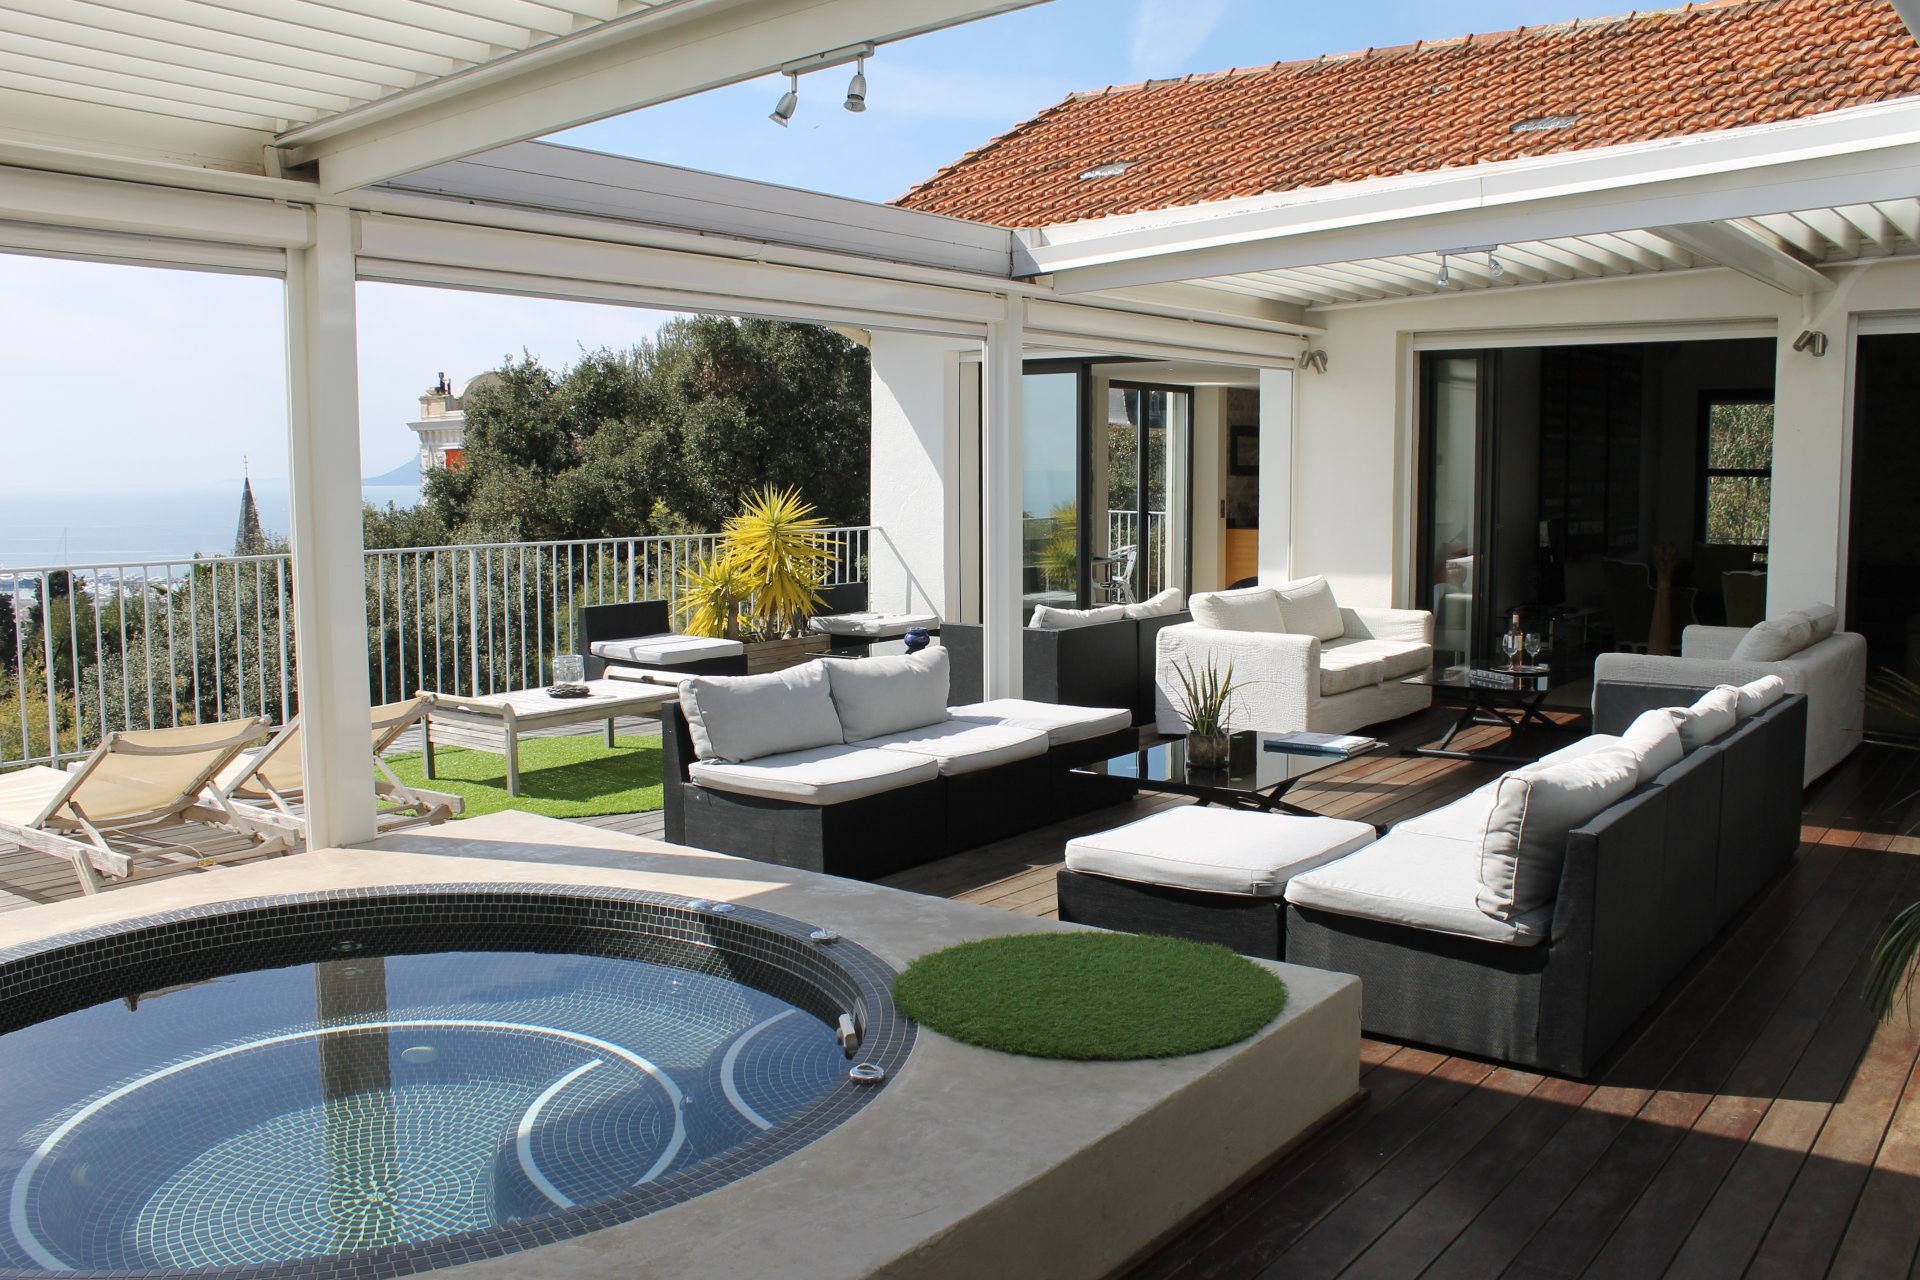 CALIFORNIA-ROI ALBERT- PENTHOUSE WITH SEA VIEW- AVAILABLE IN AUGUST-